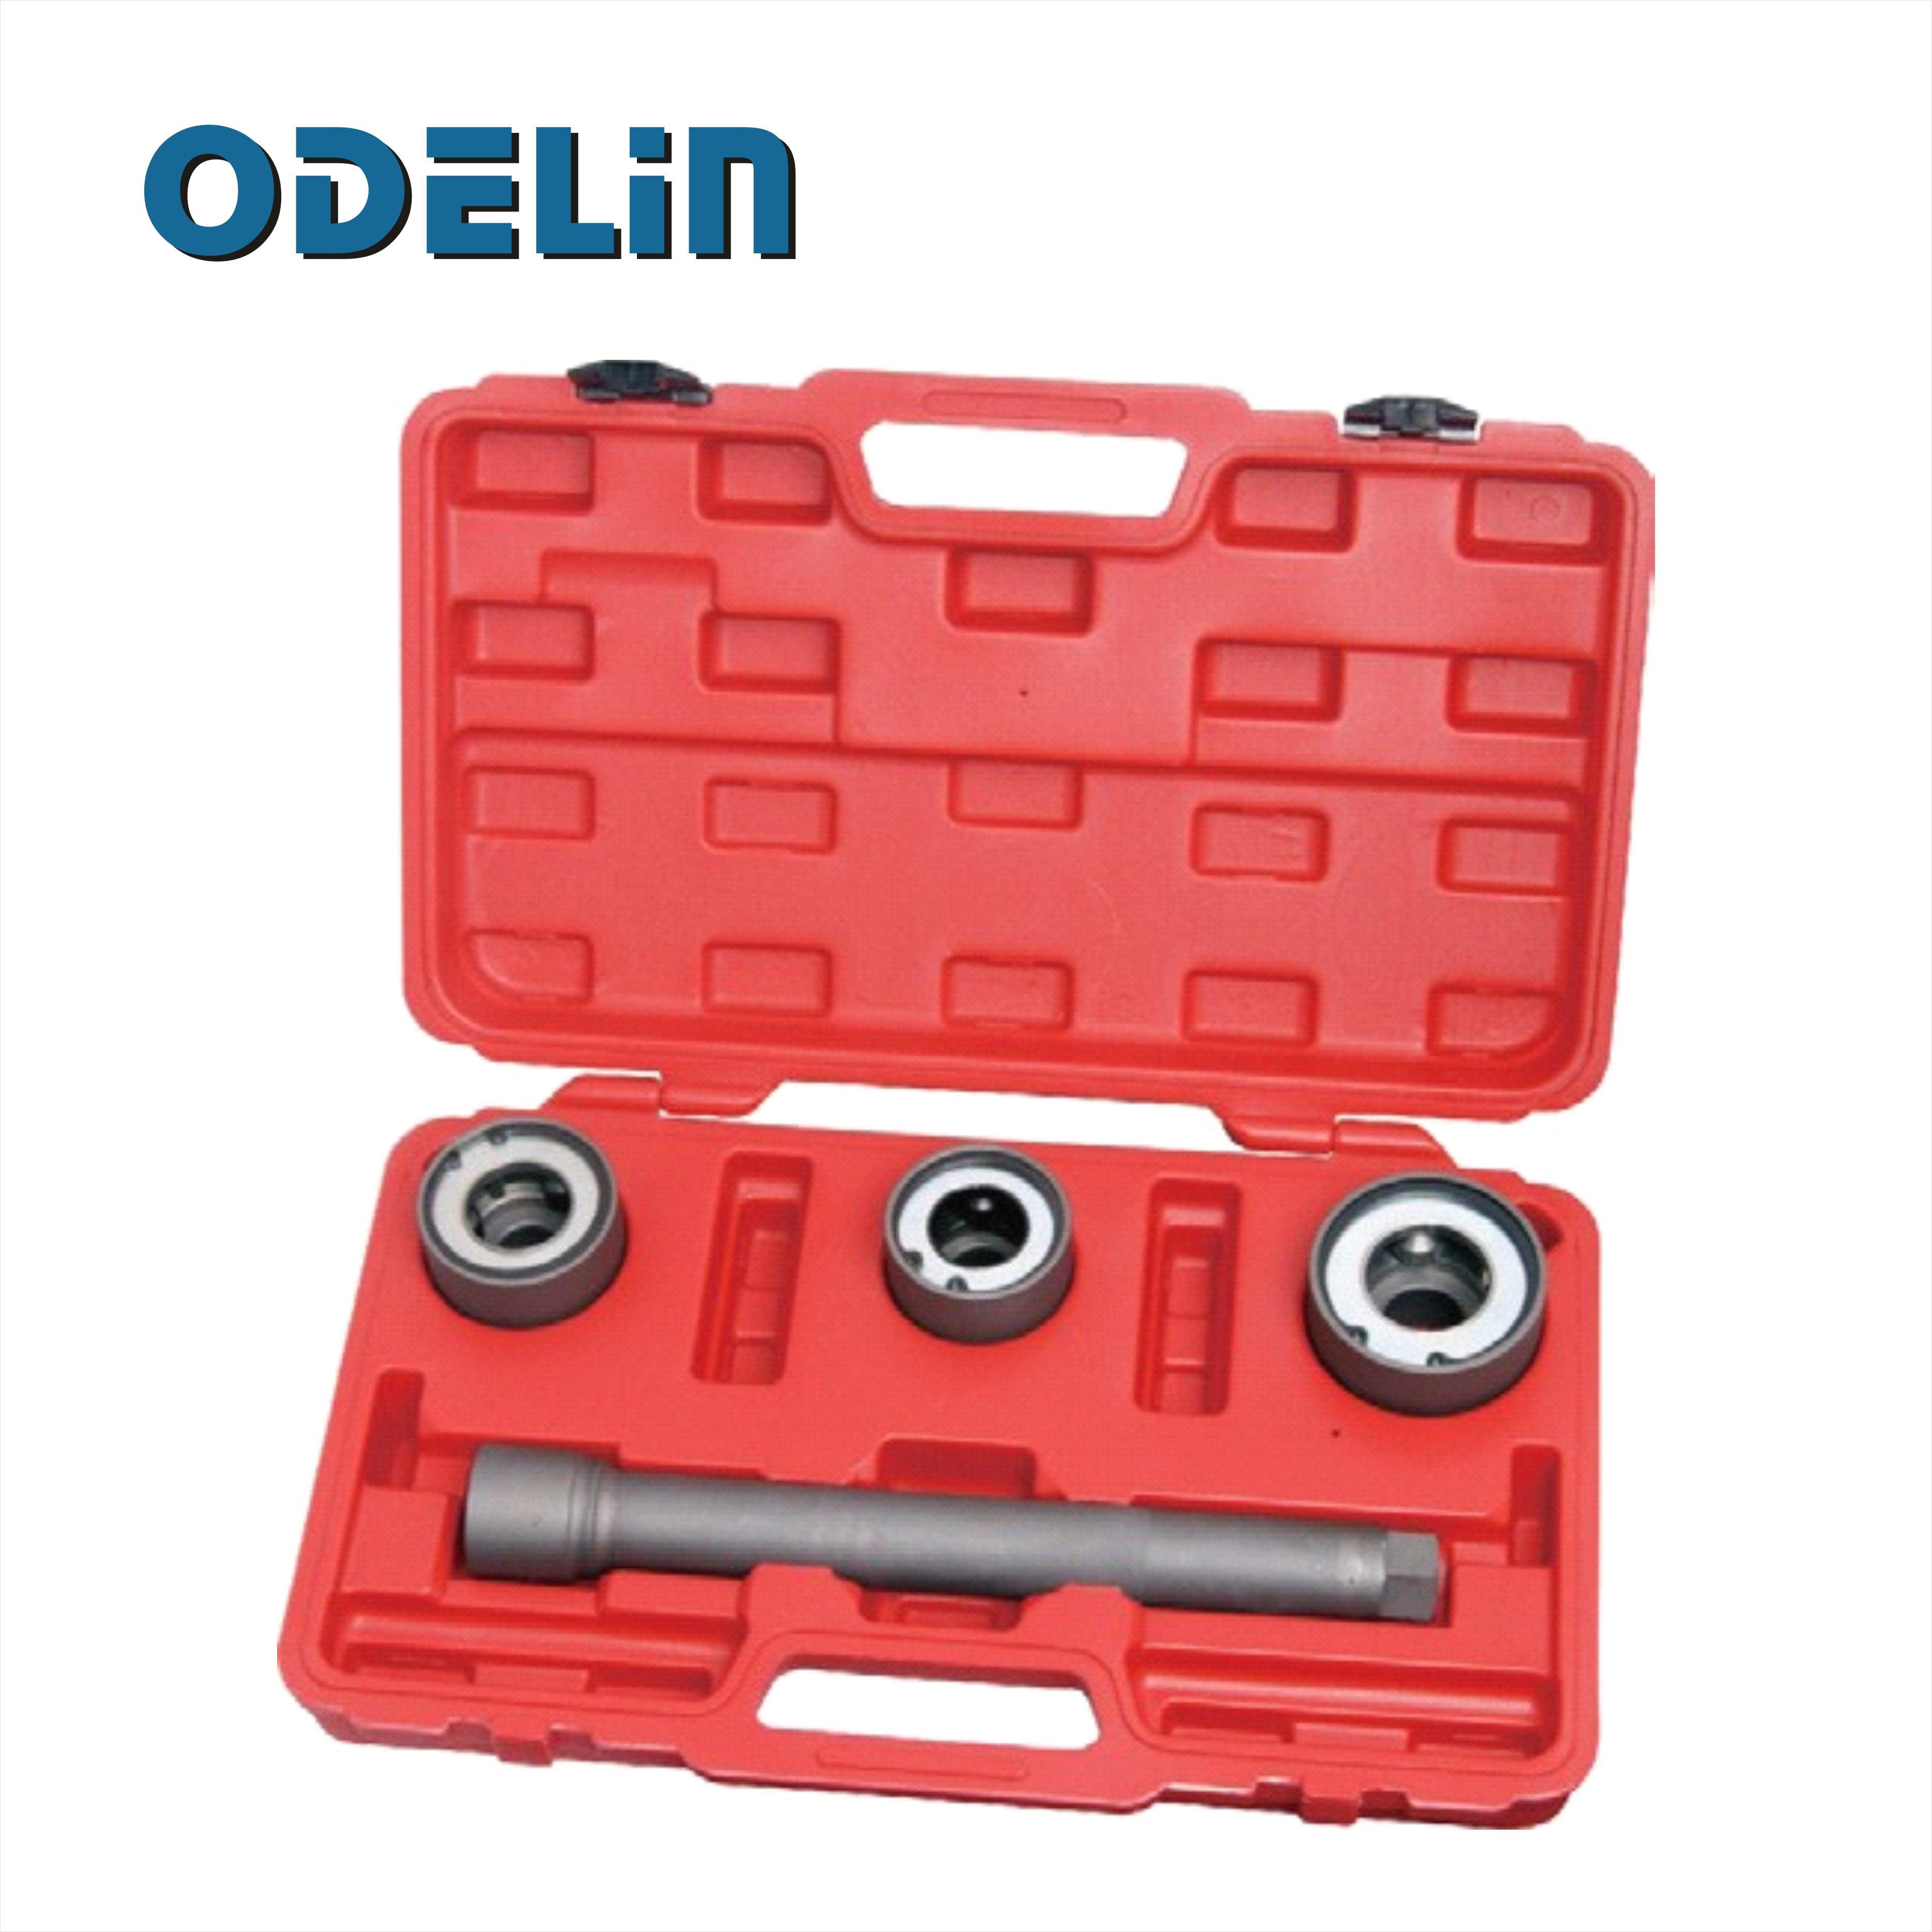 STEERING RACK**TRACK ROD END**TIE**AXIAL JOINT**28-35mm**REMOVES /& INSTALLS**